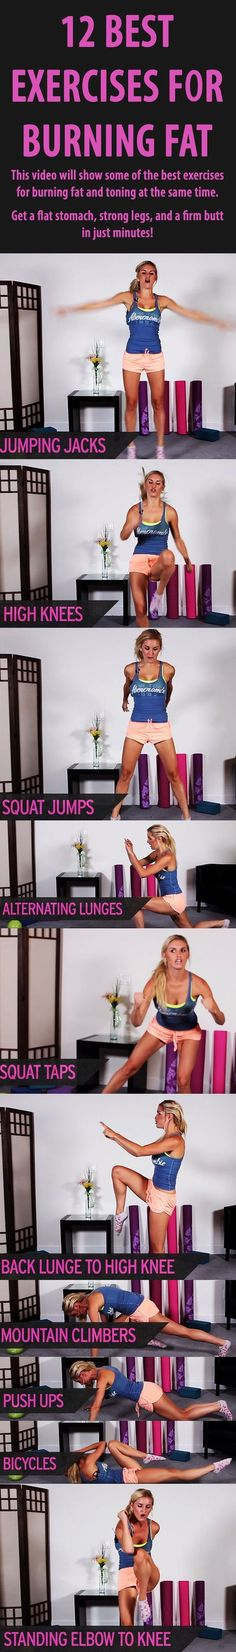 Belly Fat Workout - How to Actually Lose Weight Fast Properly Today (Top 5 Real Proven Ways) You… Do This One Unusual Trick Before Work To Melt Away Pounds of Belly Fat Calorie Burning Workouts, Fat Burning Workout, Belly Fat Workout, Butt Workout, Workout Fitness, Workout Tips, Yoga Fitness, Dieet Plan, Fitness Motivation